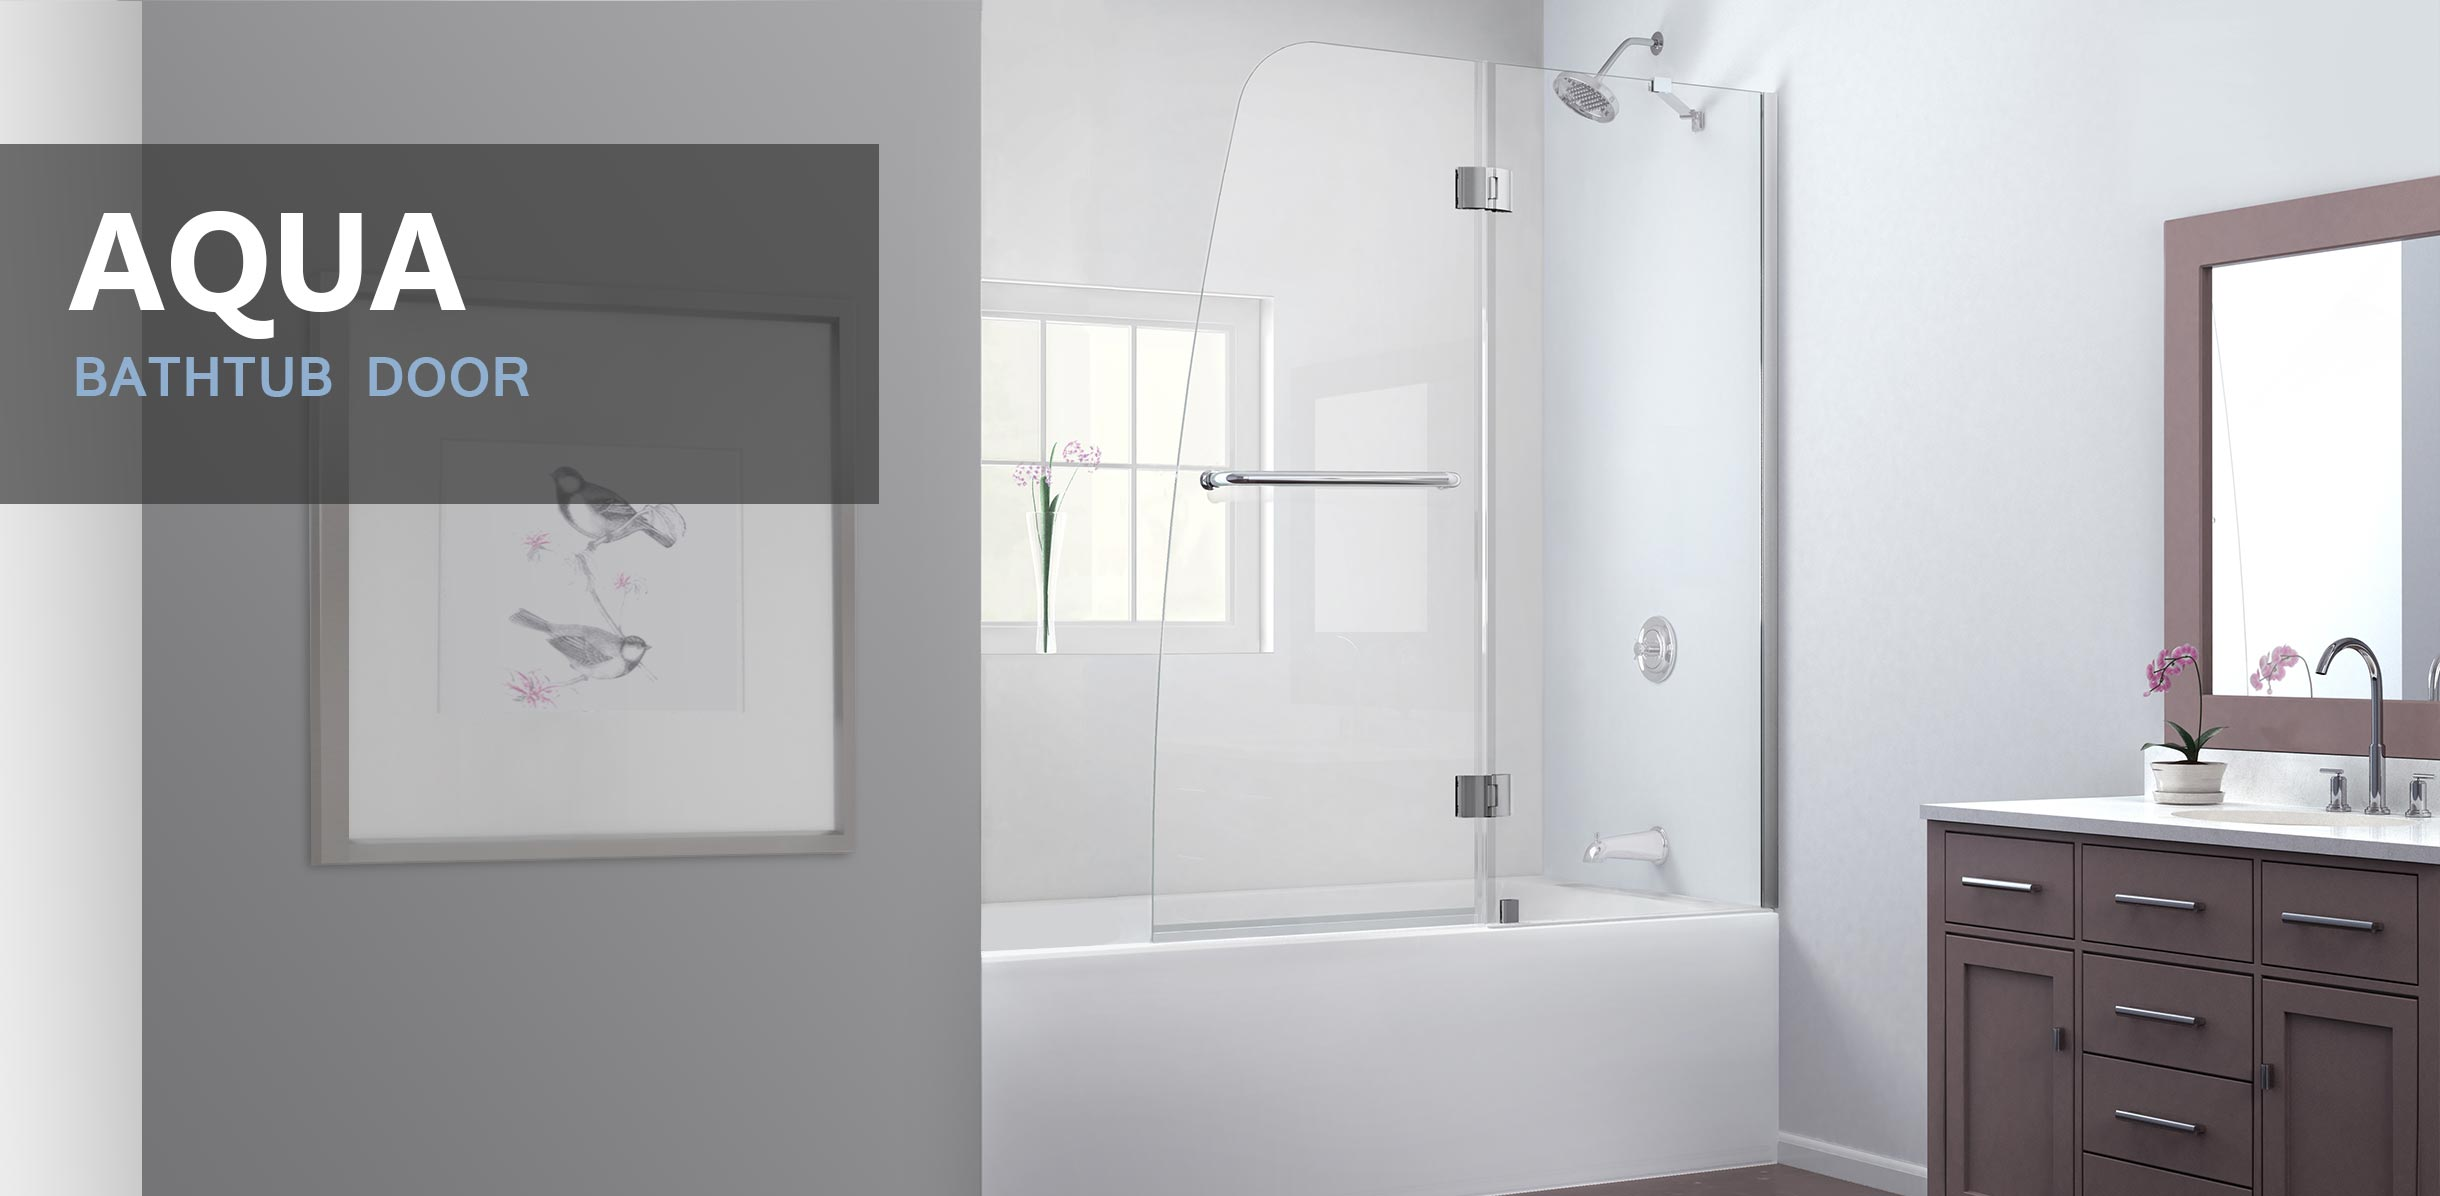 Shower door dreamline bathroom shower doors frameless glass shower - Shower Doors And Hinged Frameless Doors Dreamline Showers